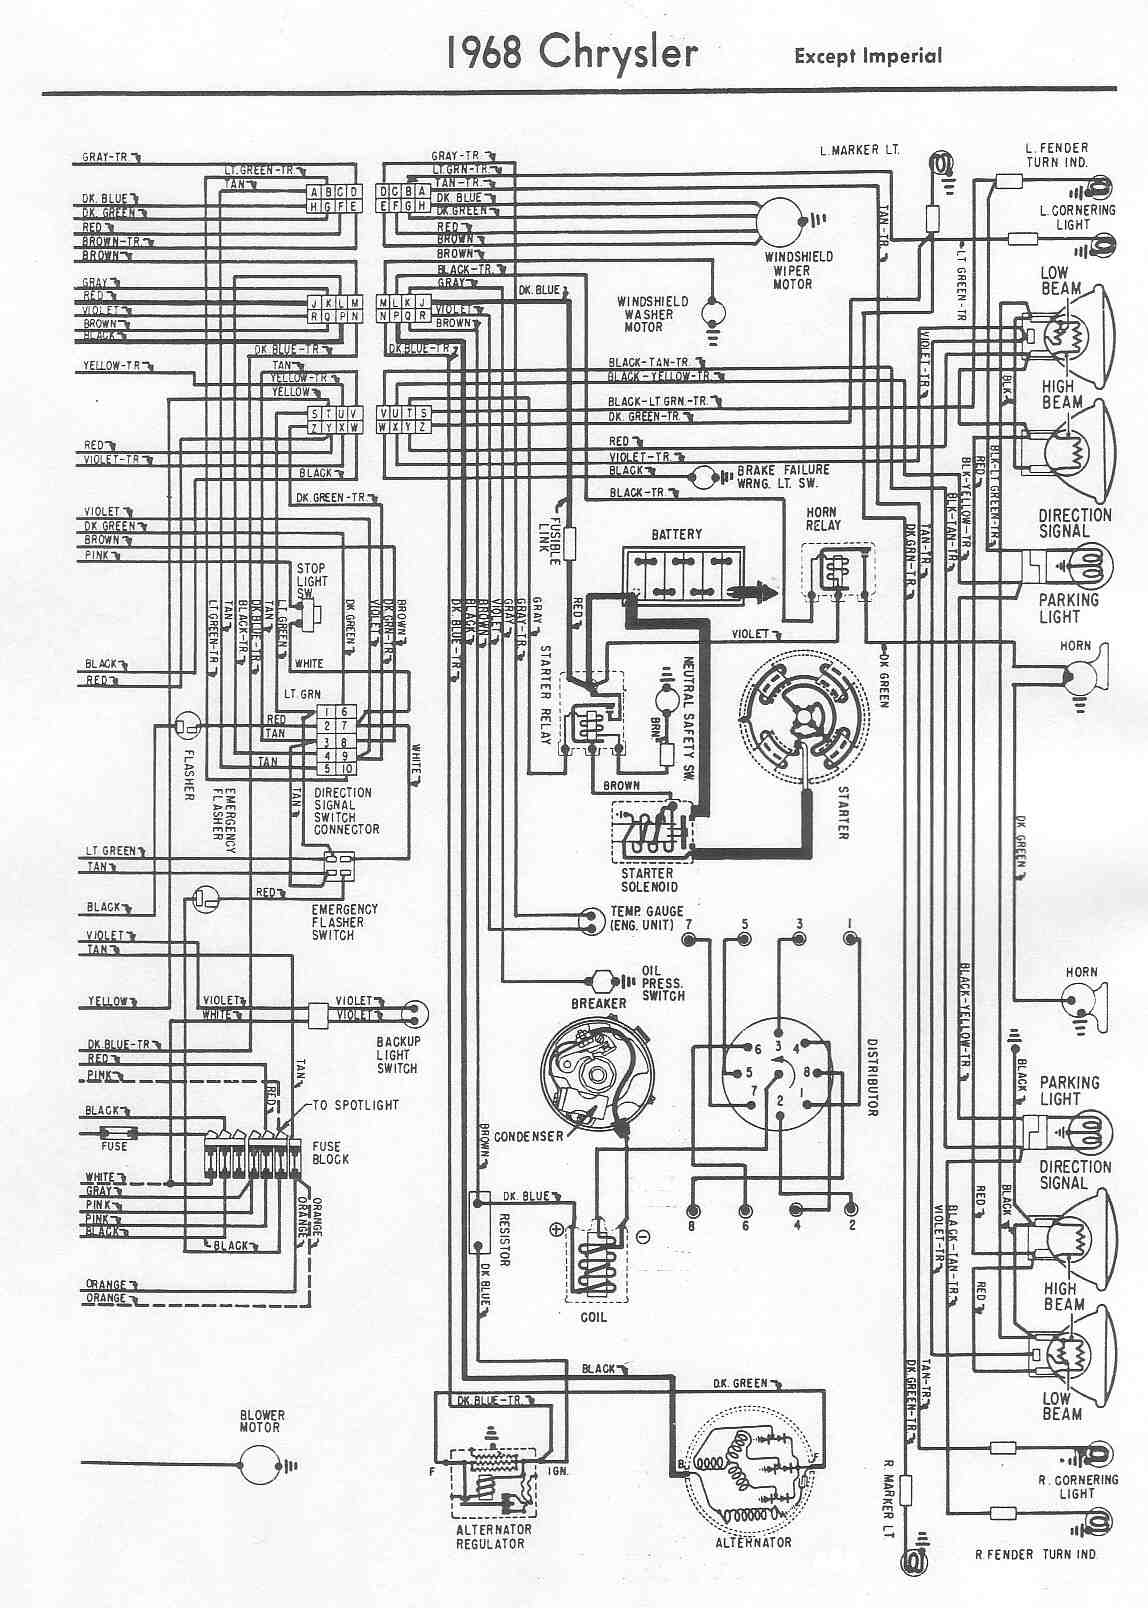 68 Mustang Dash Wiring Diagram Free Picture Diagrams 1967 Gto Underhood Download Detailed Engine 1968 Electrical